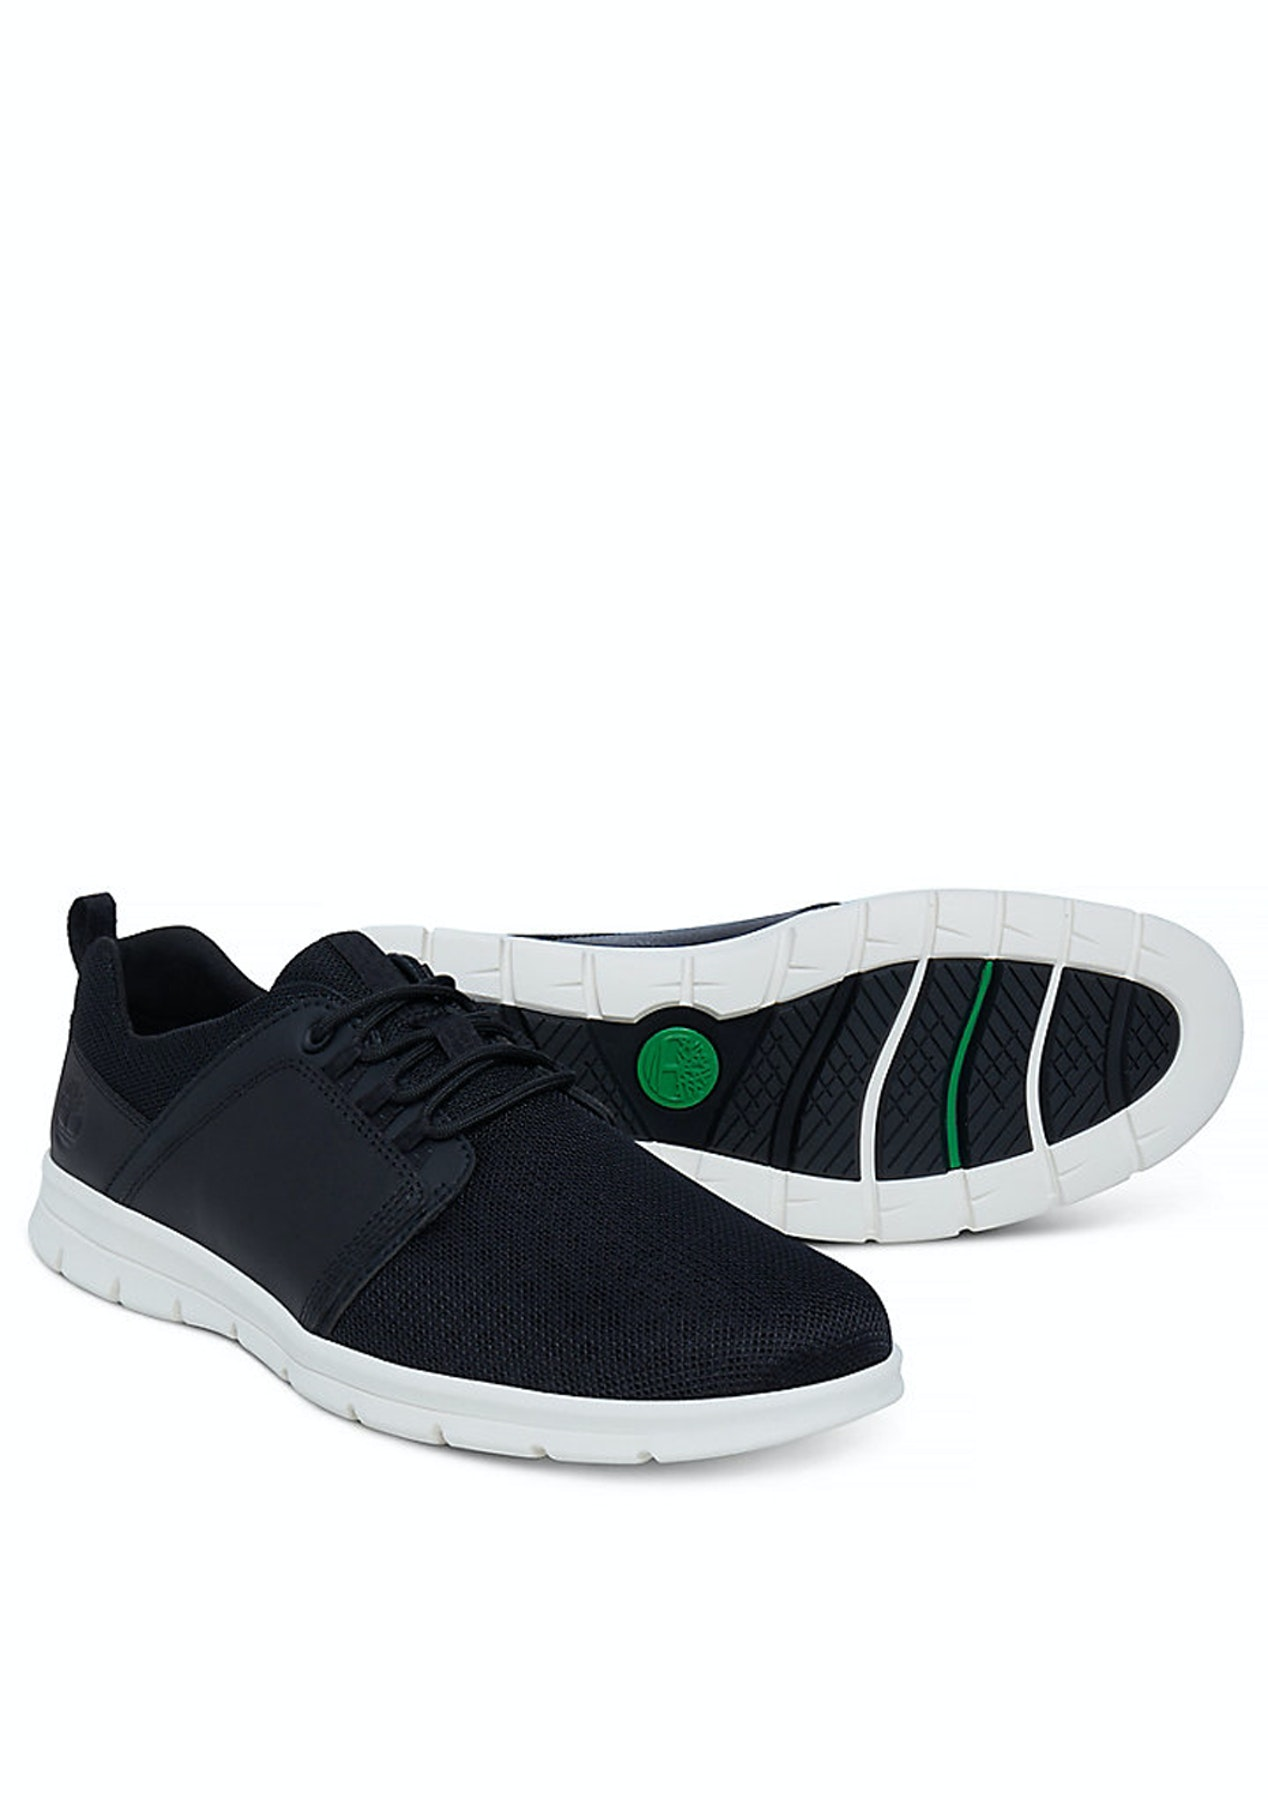 affordable price quite nice sleek Timberland - A1HRX Mens Graydon Fabric and Leather Trainer - Black